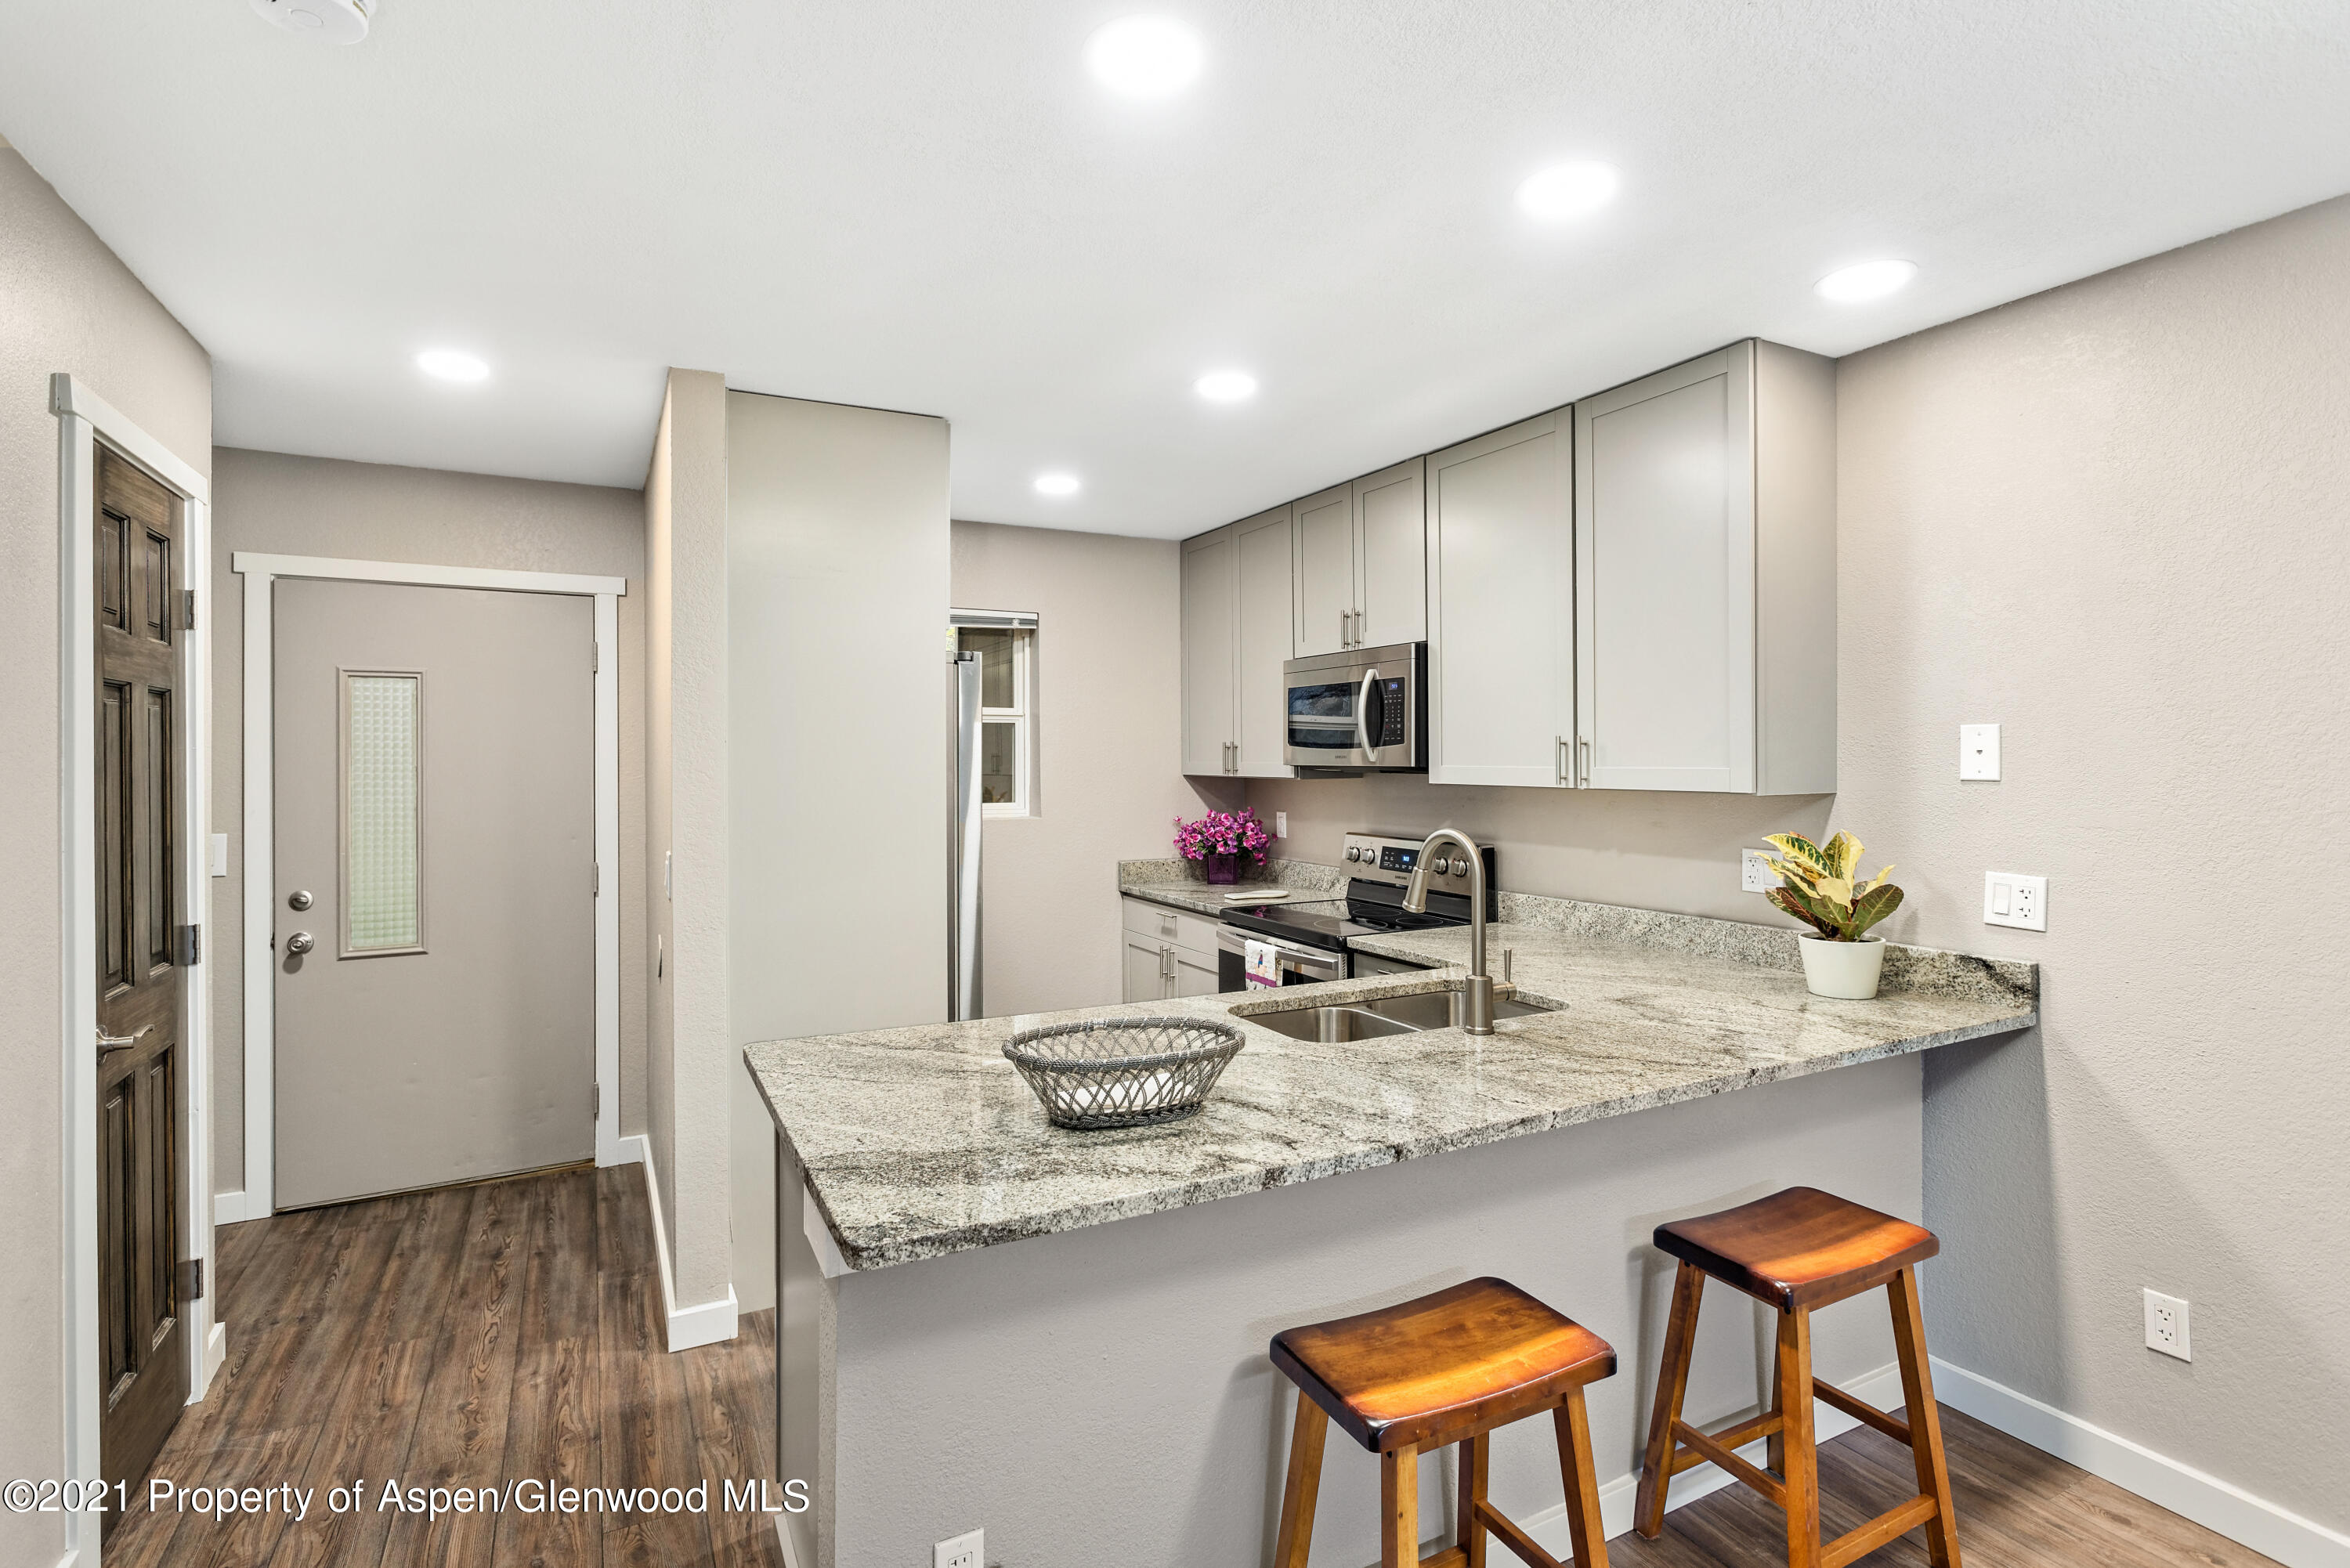 Everything has been remodeled in this perfect two bedroom end unit Oak Grove townhouse. The kitchen has been redesigned with new cabinets to the ceiling, solid granite countertops, can lighting and all new Samsung stainless steel appliances. All new doors and hardware, new heat registers, fresh paint, LVT plank flooring and new ceiling fans to complete the design. This unit has 2 covered parking spaces. All bathrooms have new vanities, completed tiled showers and new tub. Located 5-10 minutes from the Rio Grande and new mountain biking trails.